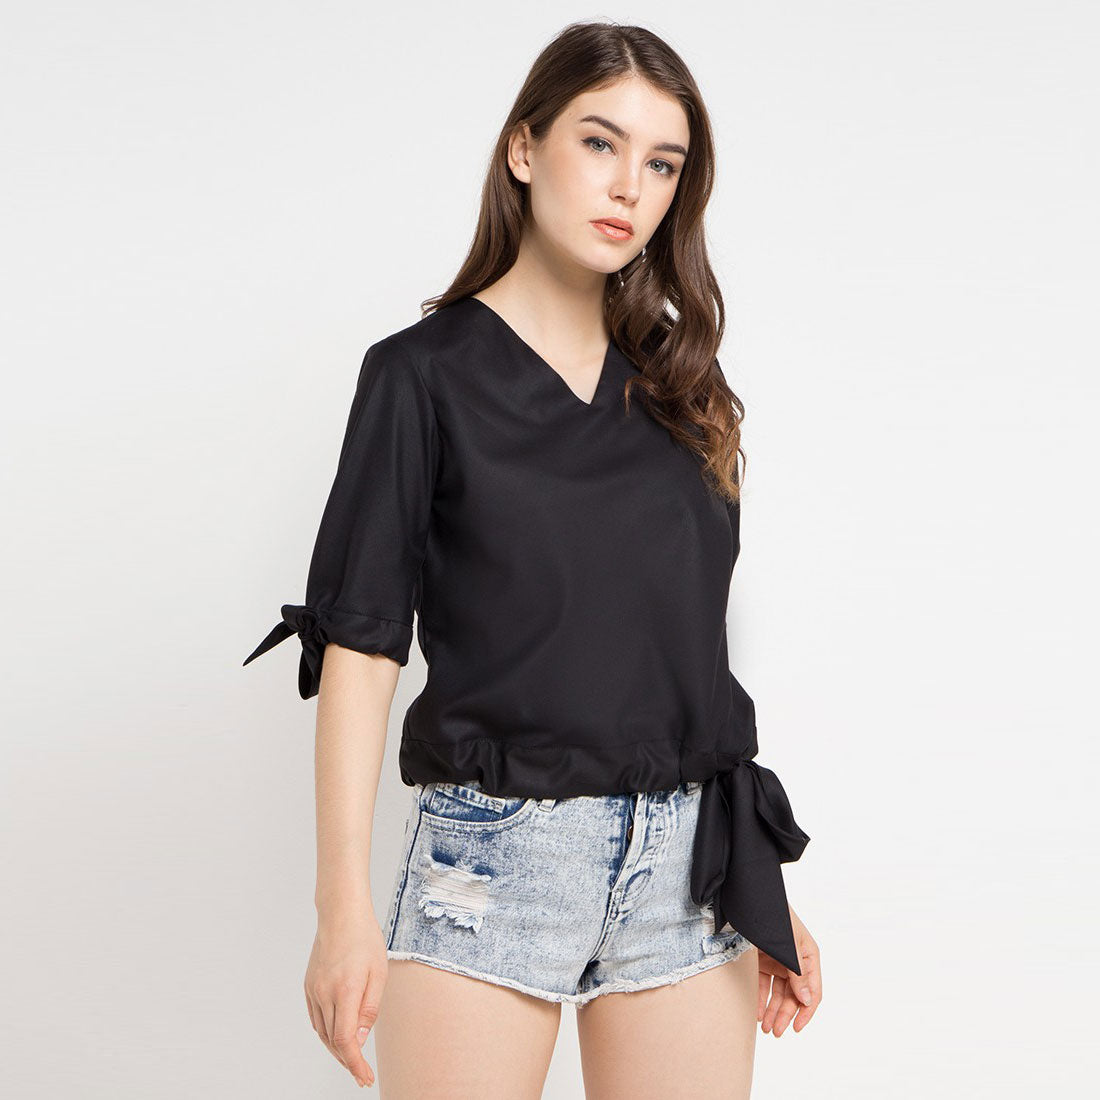 Cotton Blouse with Bow Tie in Black-2Madison Avenue Indonesia